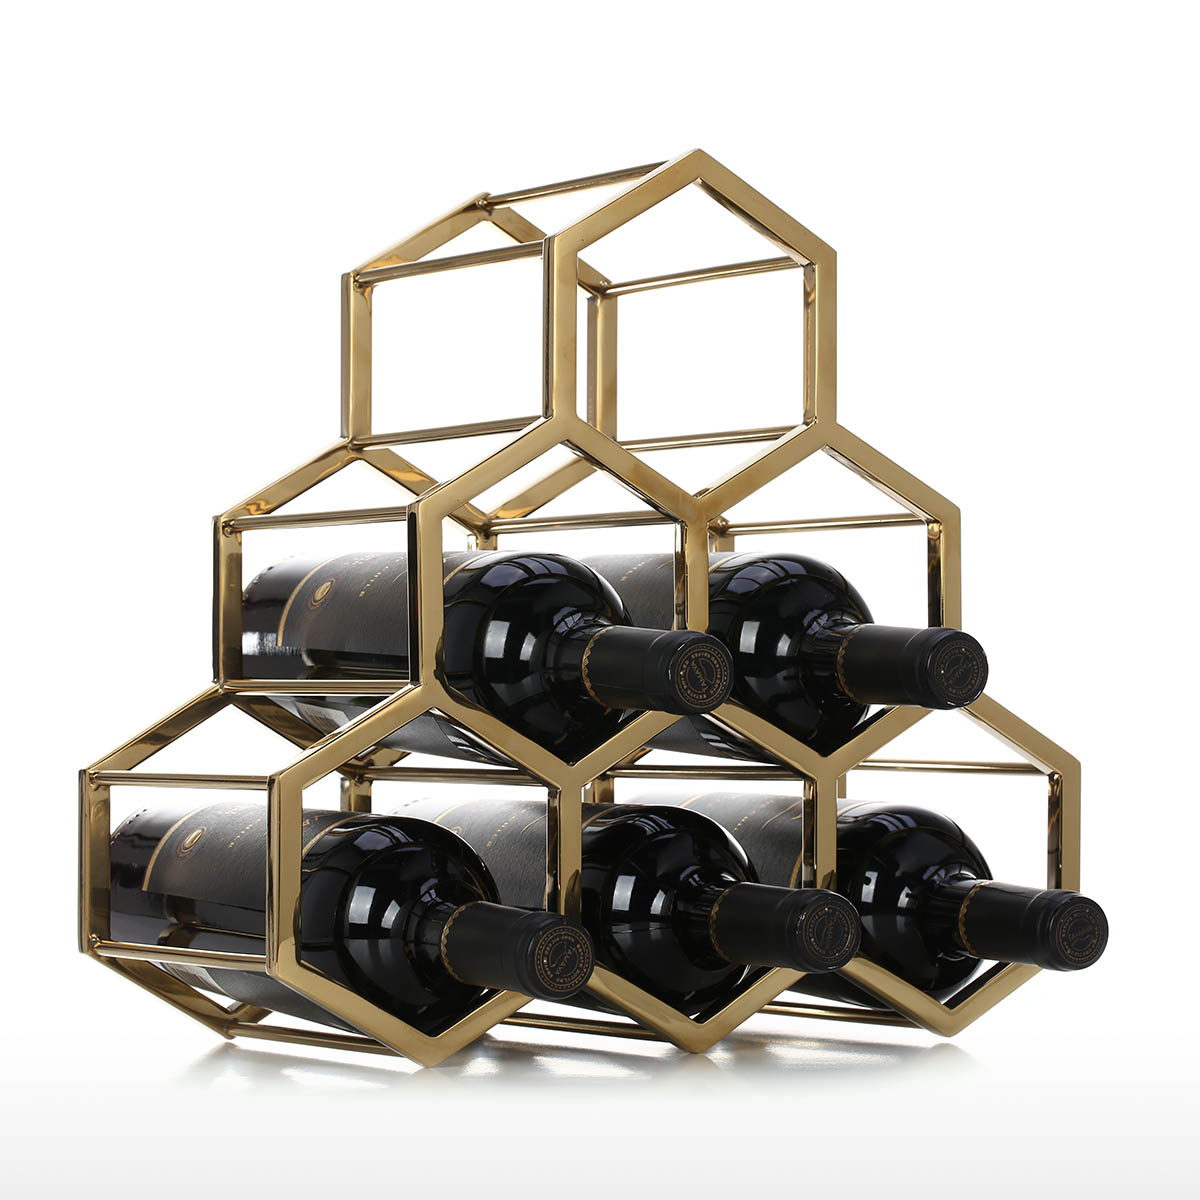 honeycomb wine rack metal wine holder innovative wine holder 6 bottle rack horizontal storage compact design free standing home decor practical gift